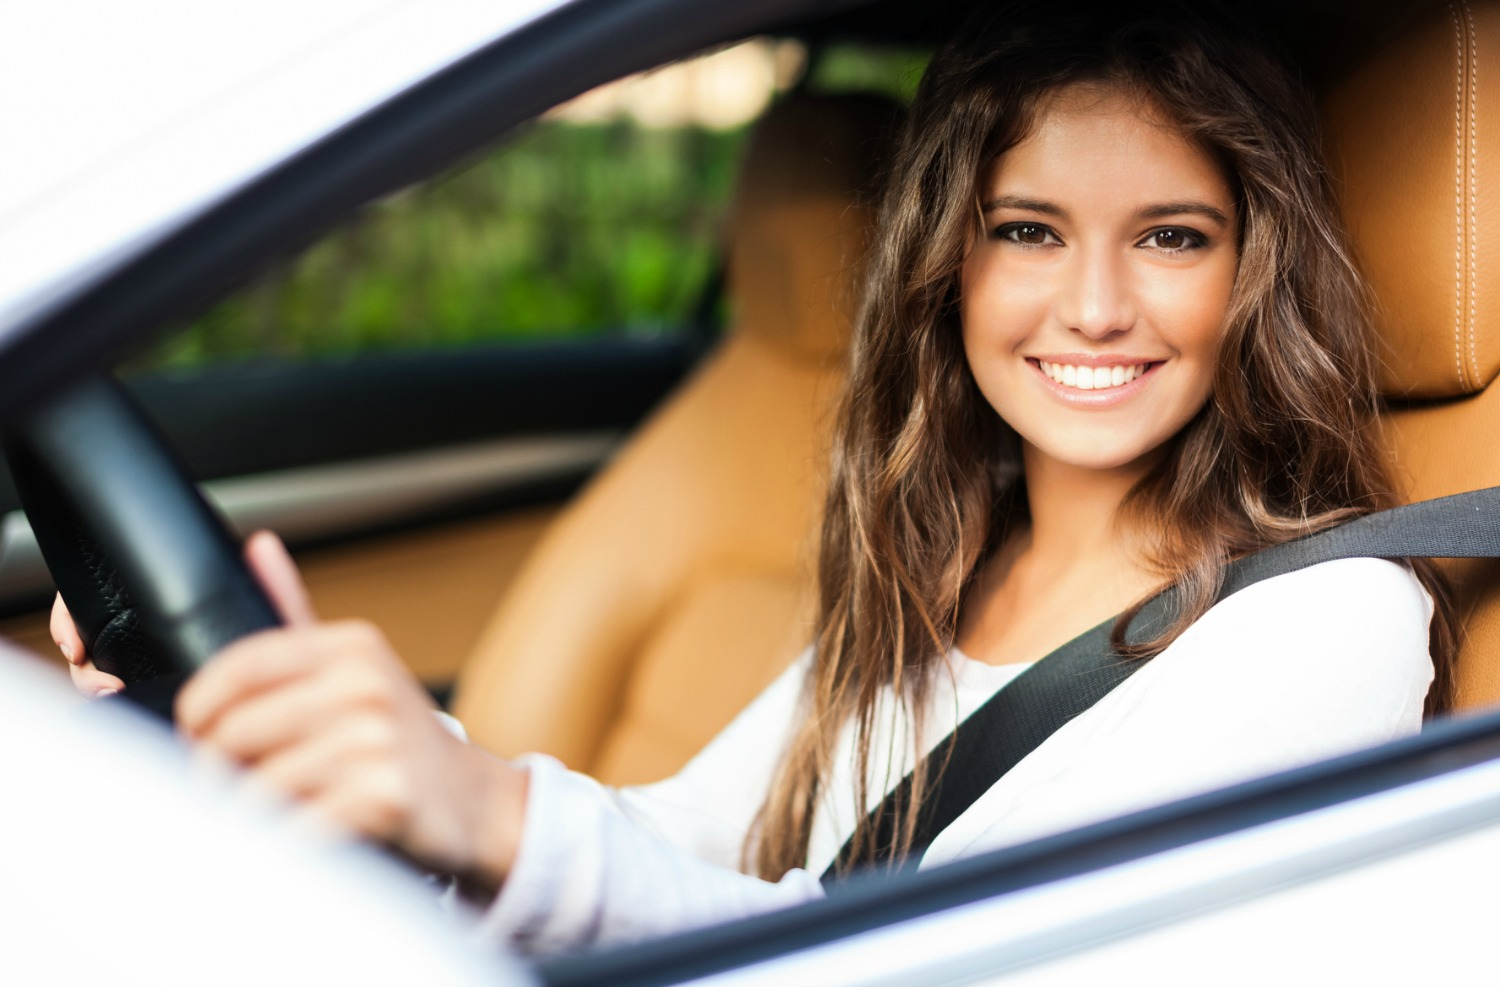 Want to lower your Sterling Heights auto insurance bill? Here are 5 tips!